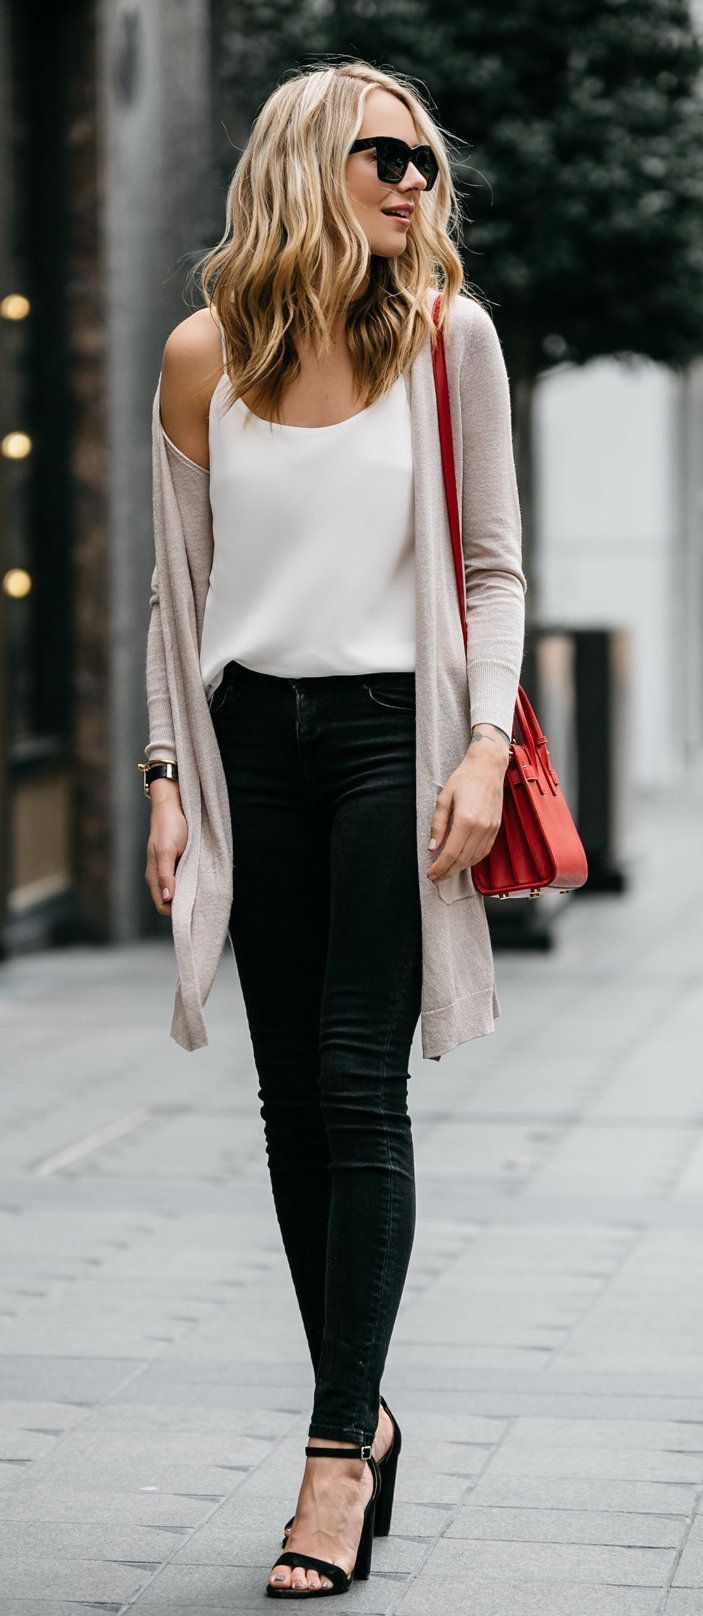 Beige cardigan over white camisole and black jeans. | My Style ...